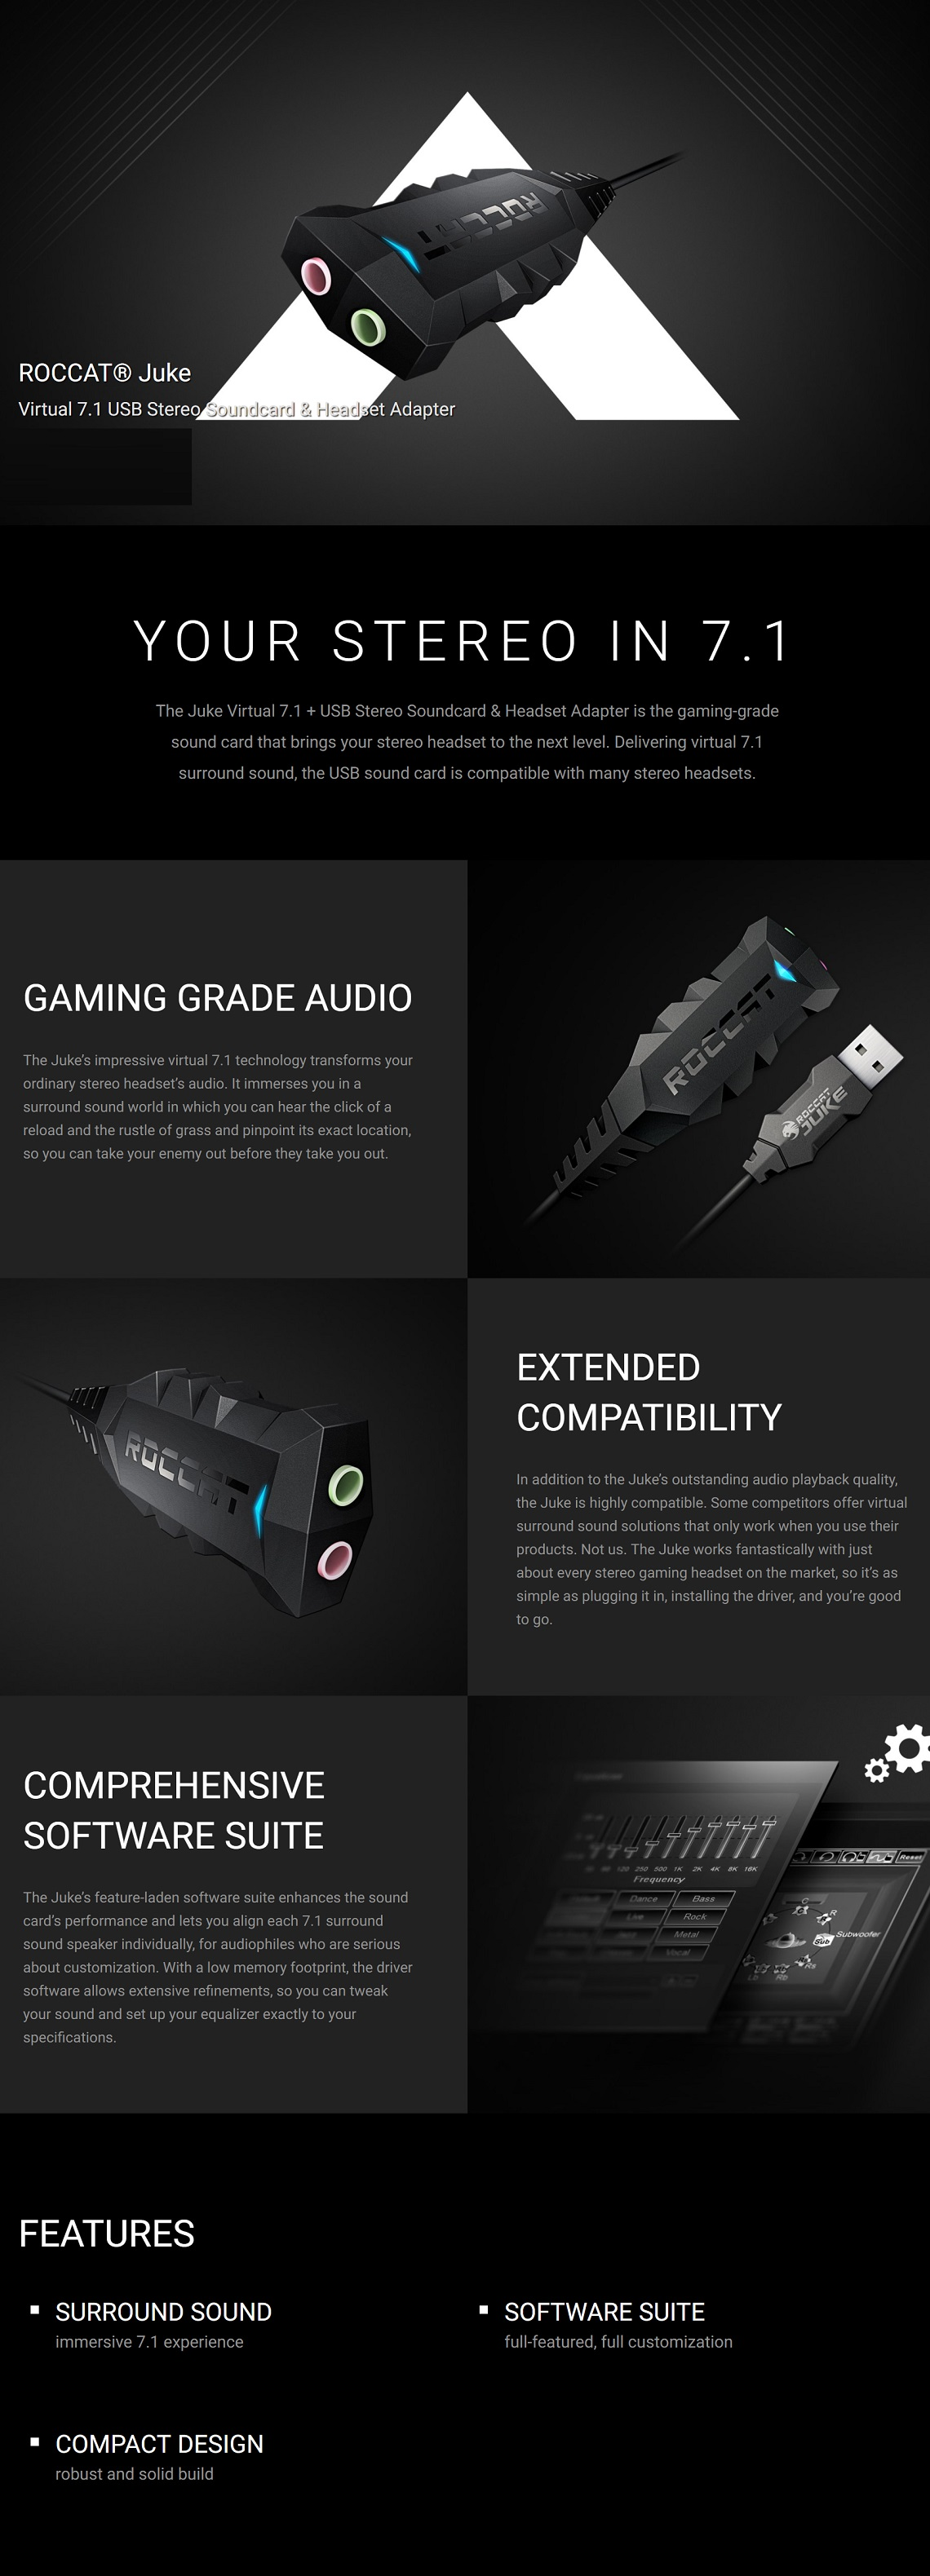 Roccat Juke Virtual 7.1 USB Stereo Soundcard & Headset Adapter Robust Solid Build